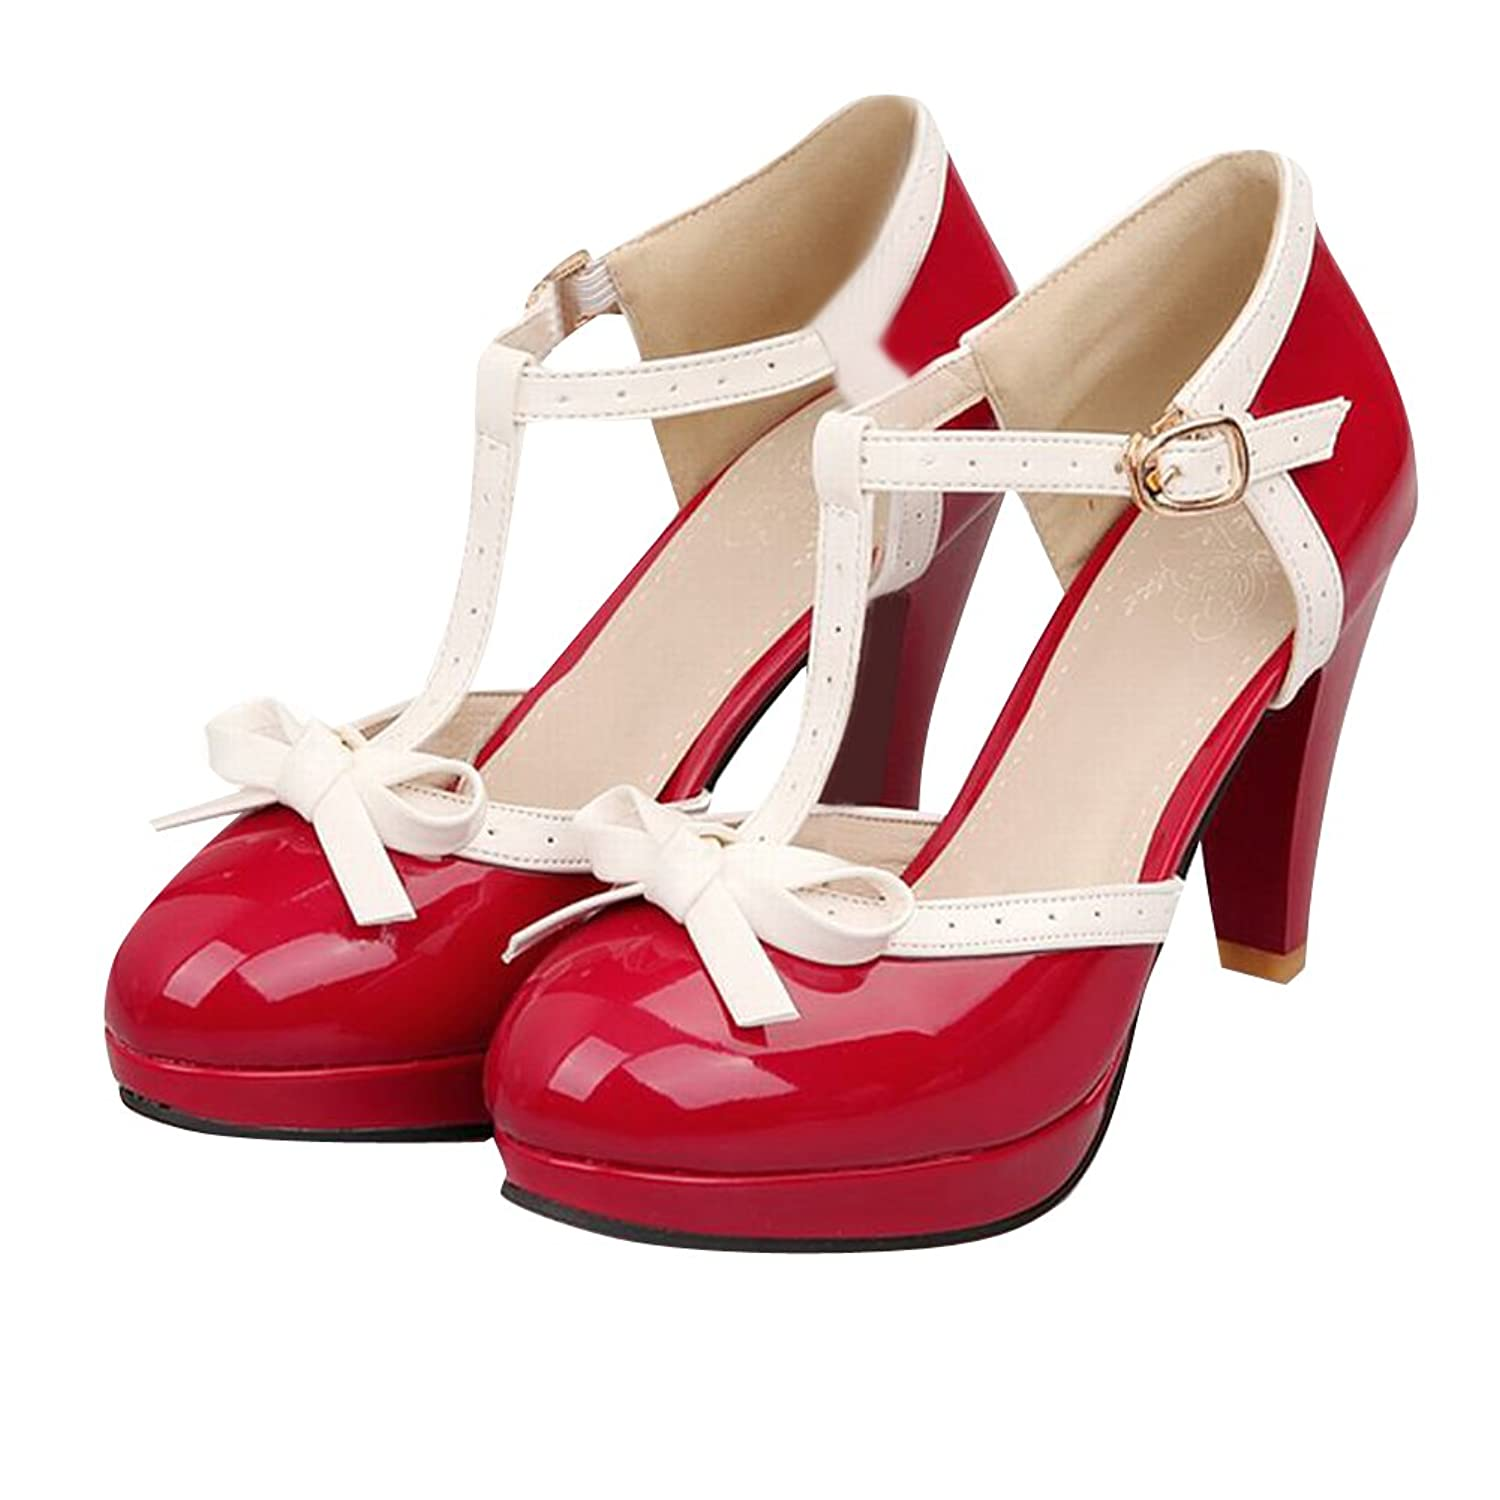 1950s Style Shoes | Heels, Flats, Saddle Shoes Carol Shoes Fashion T Strap Bows Womens Platform High Heel Pumps Shoes $28.00 AT vintagedancer.com